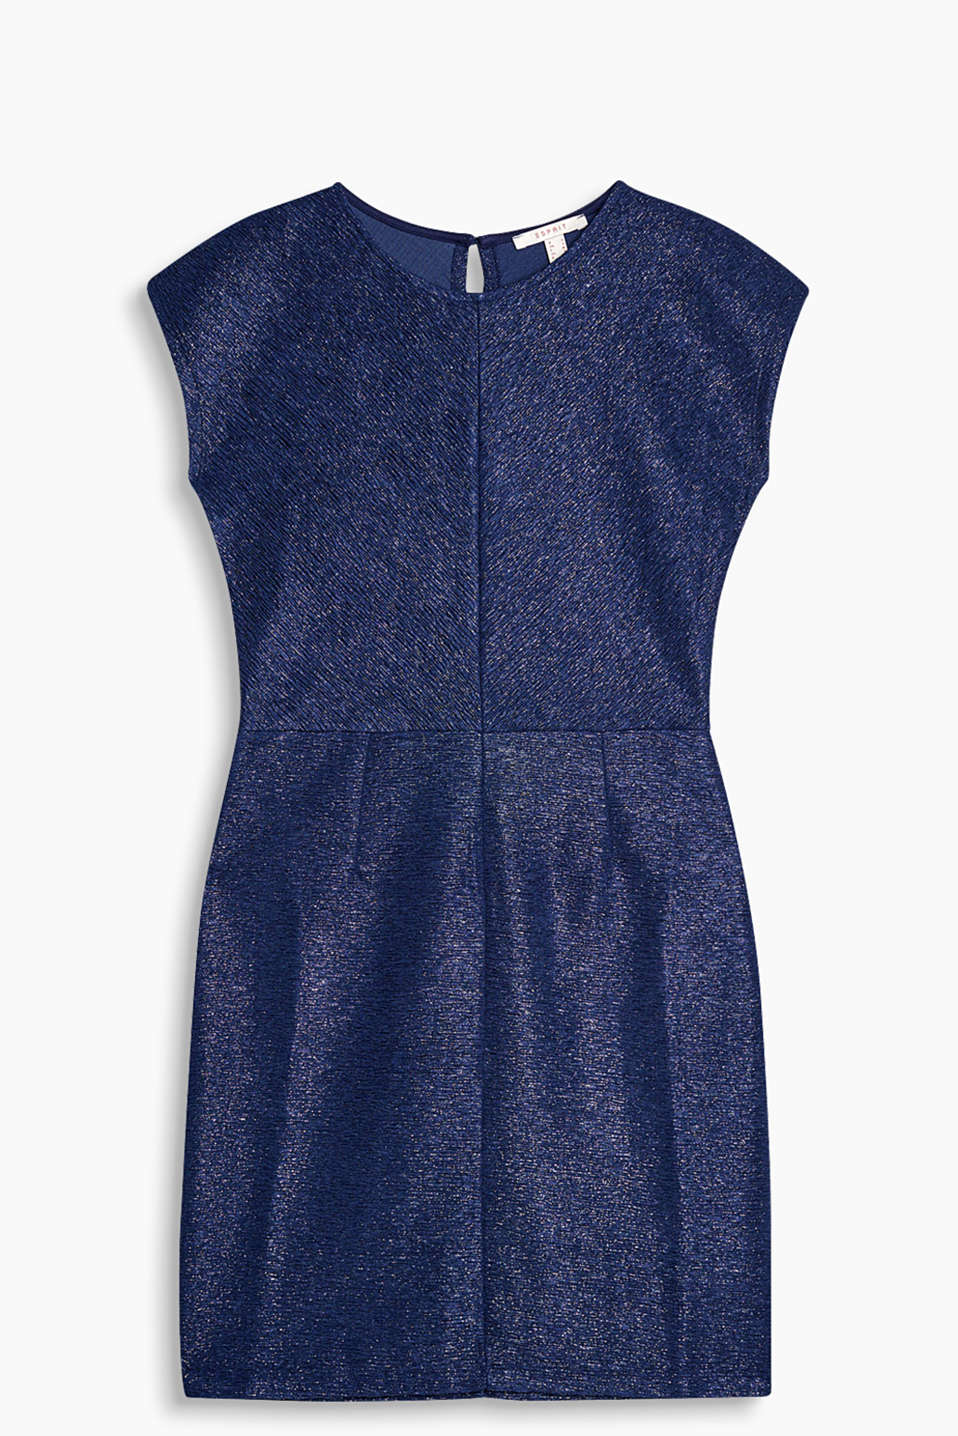 Glittery sheath dress in crinkle jersey